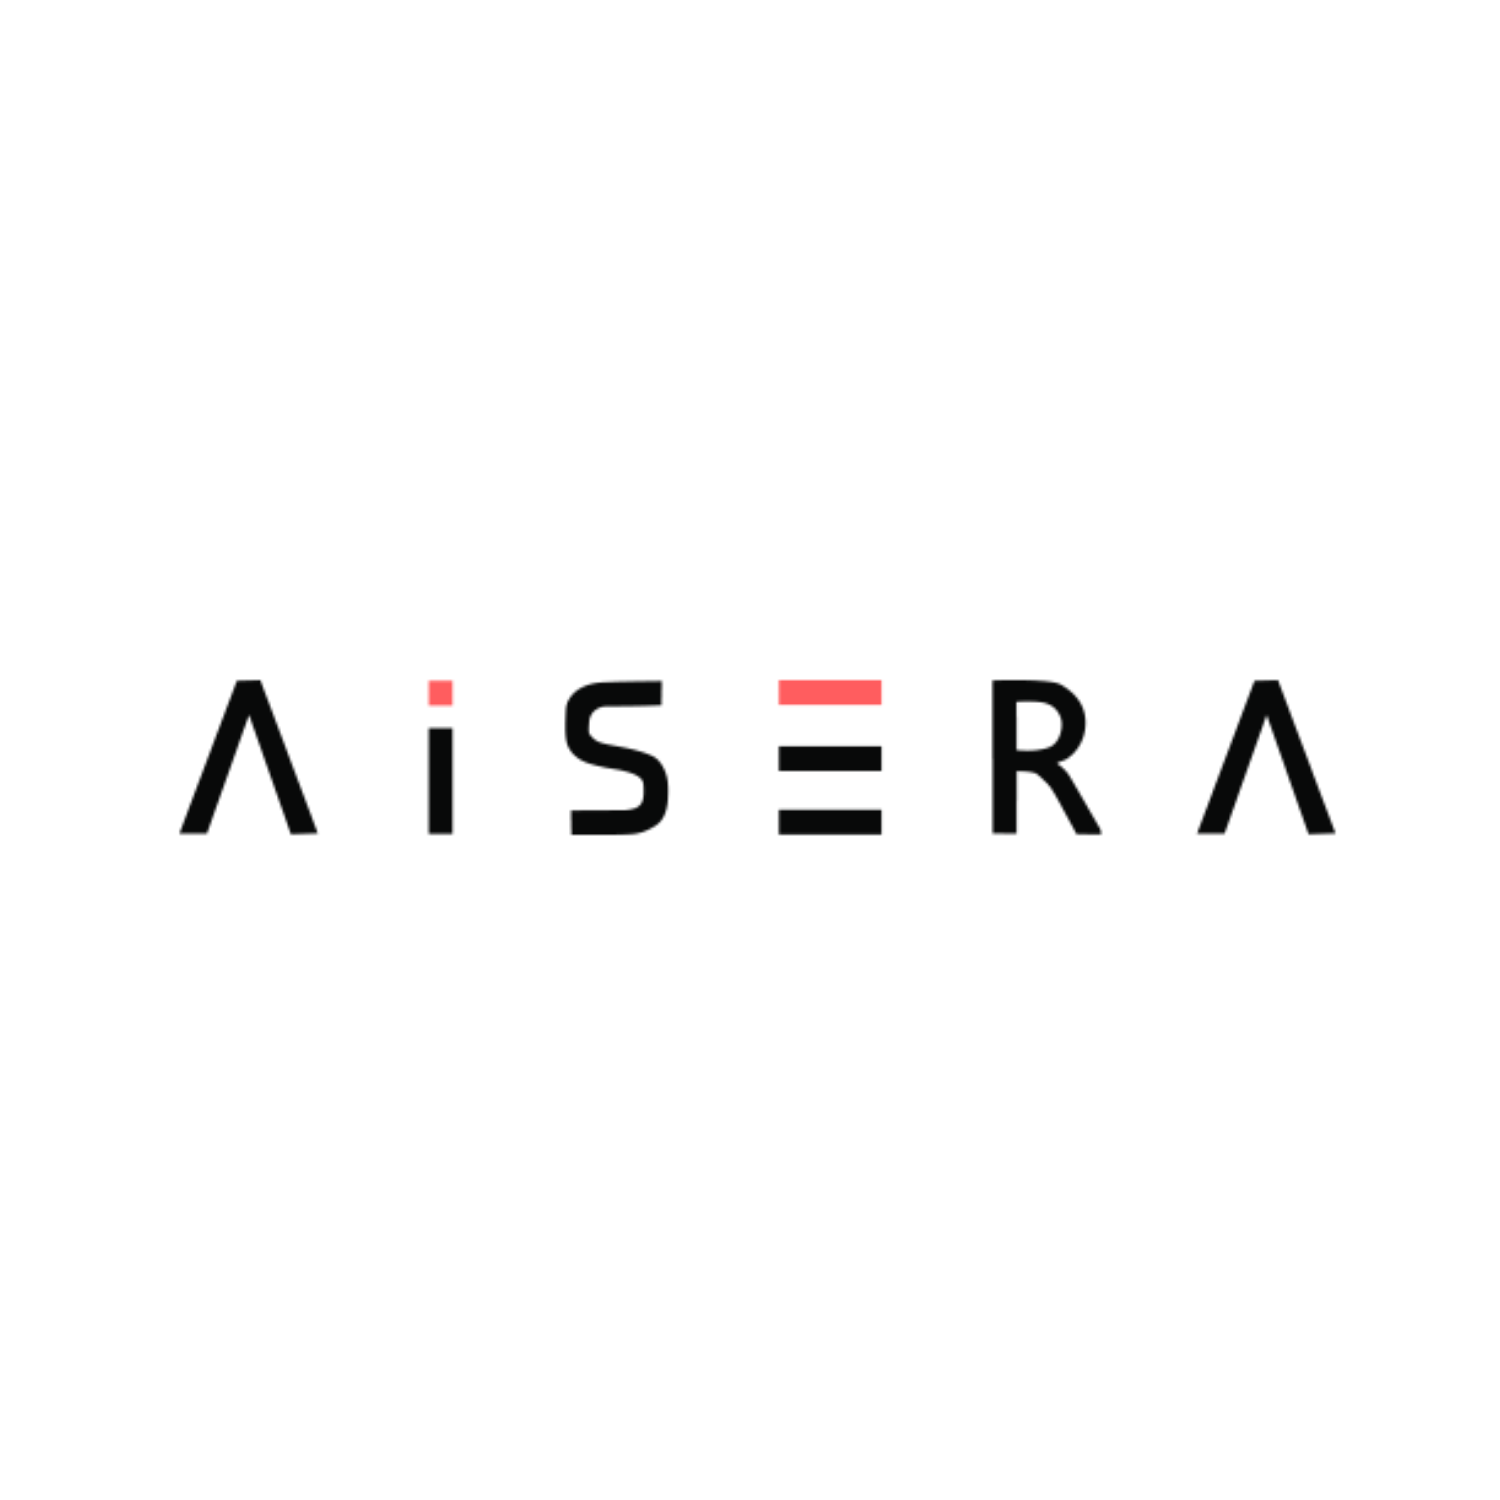 Aisera's Conversational AI Solution for Microsoft Teams Will Help Change the Future of Work